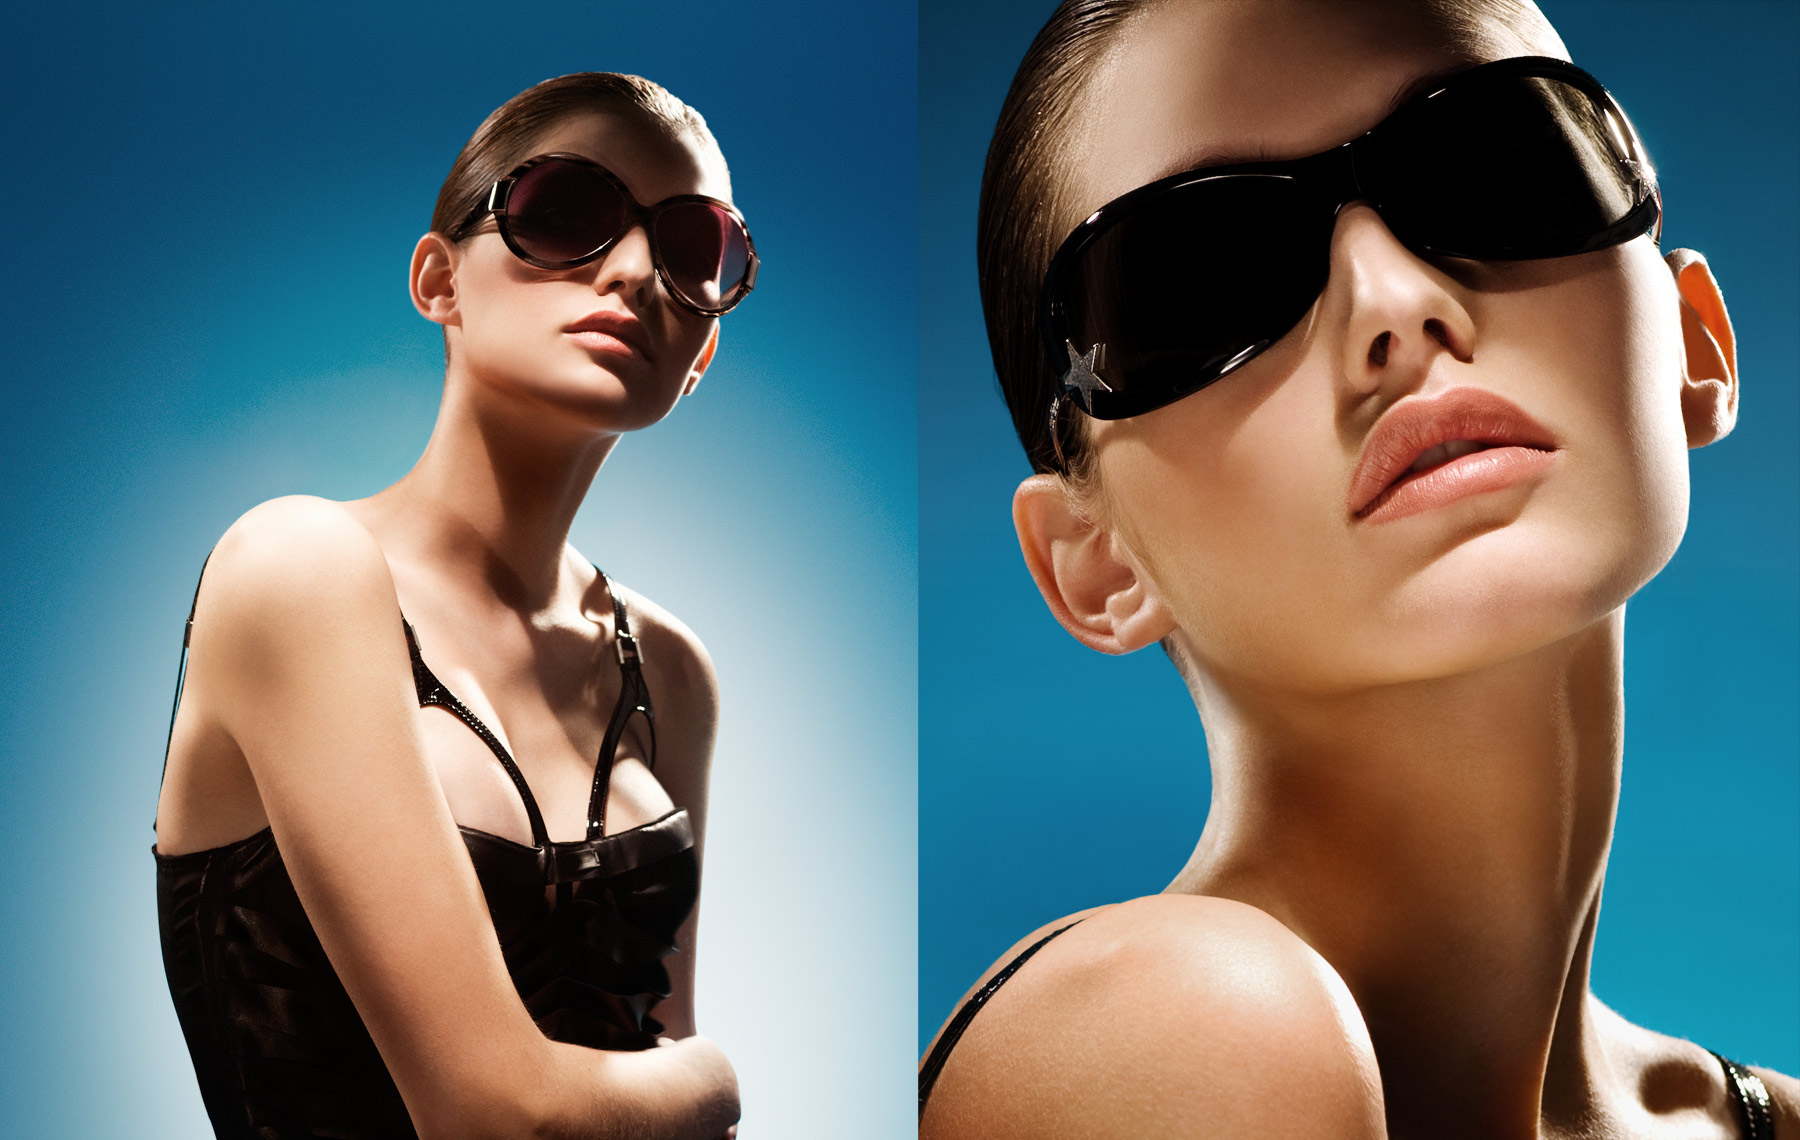 David-Fierro-Sunglasses-Beauty-Vancouver-Magazine-DUP.jpg